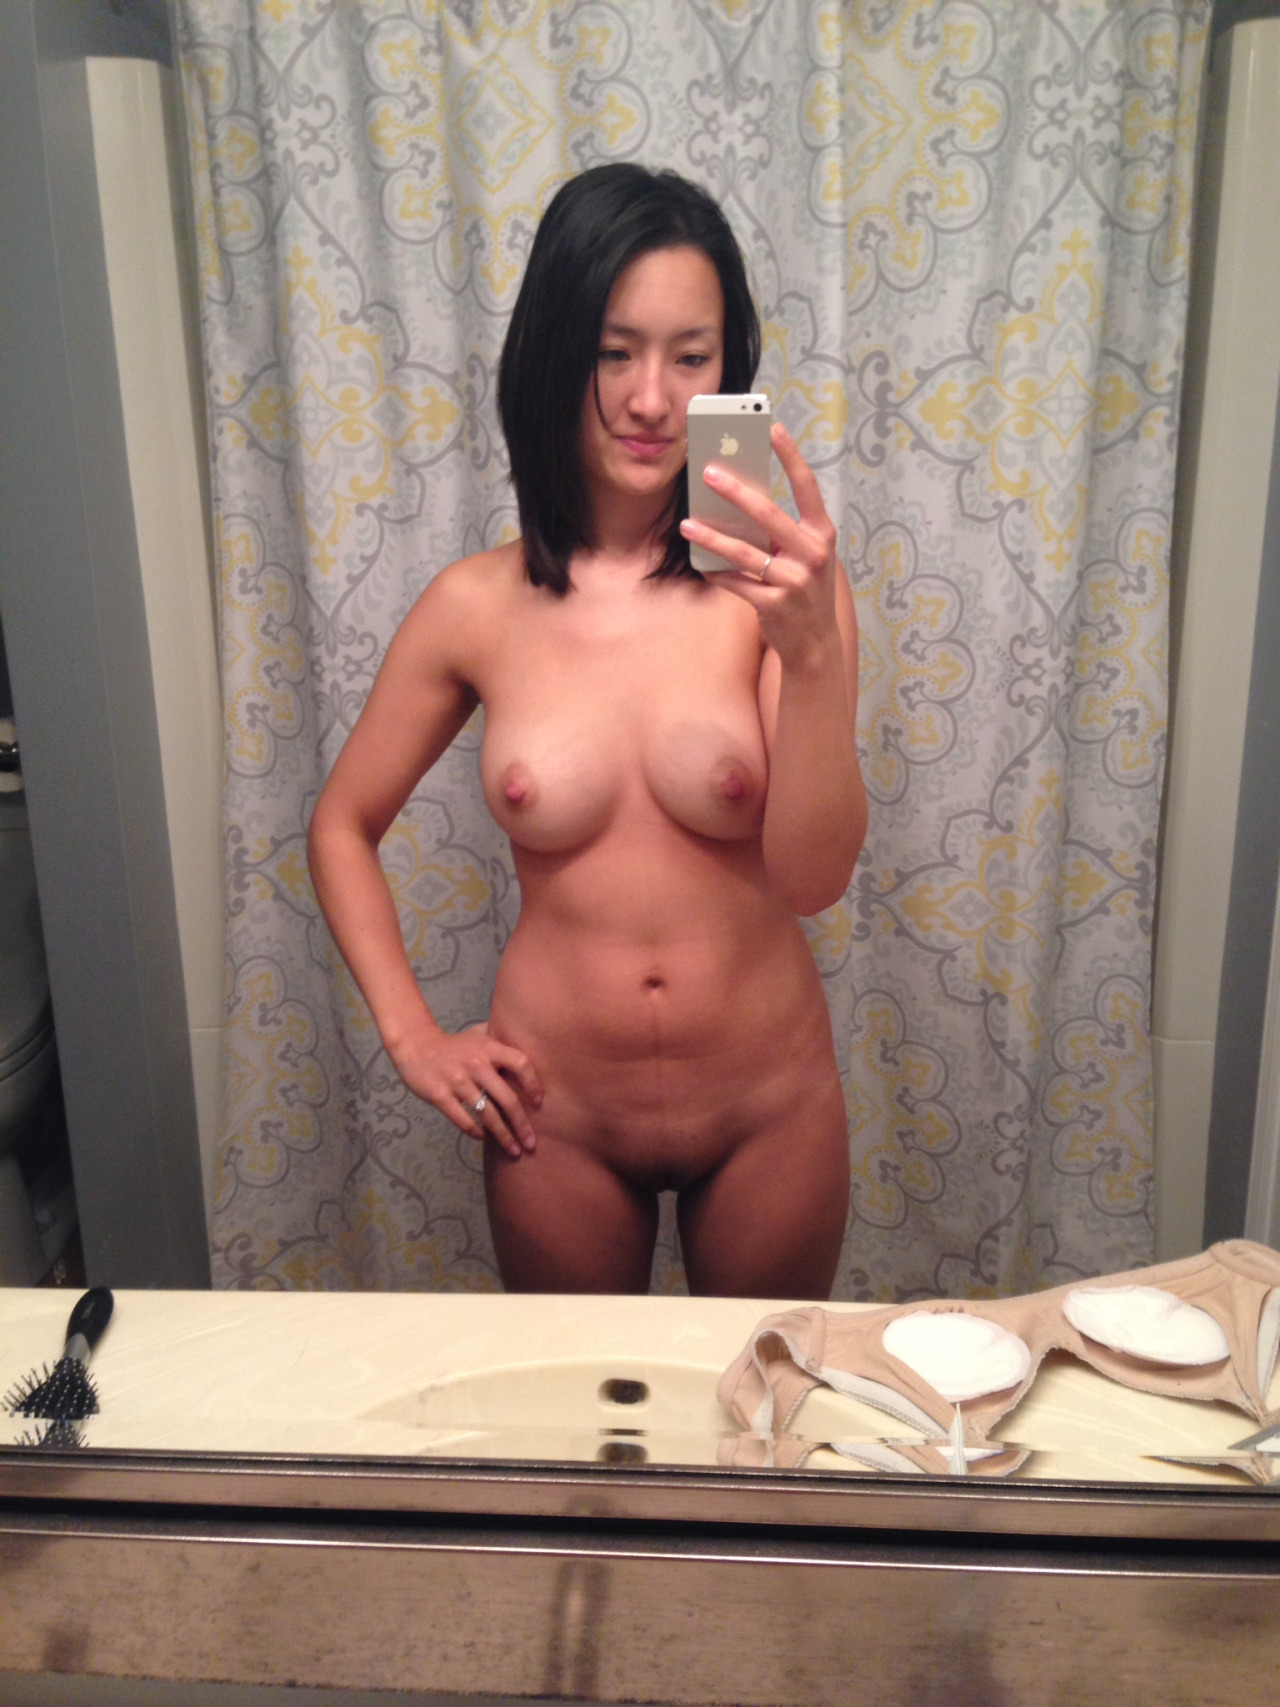 Oral sex moms nude photo